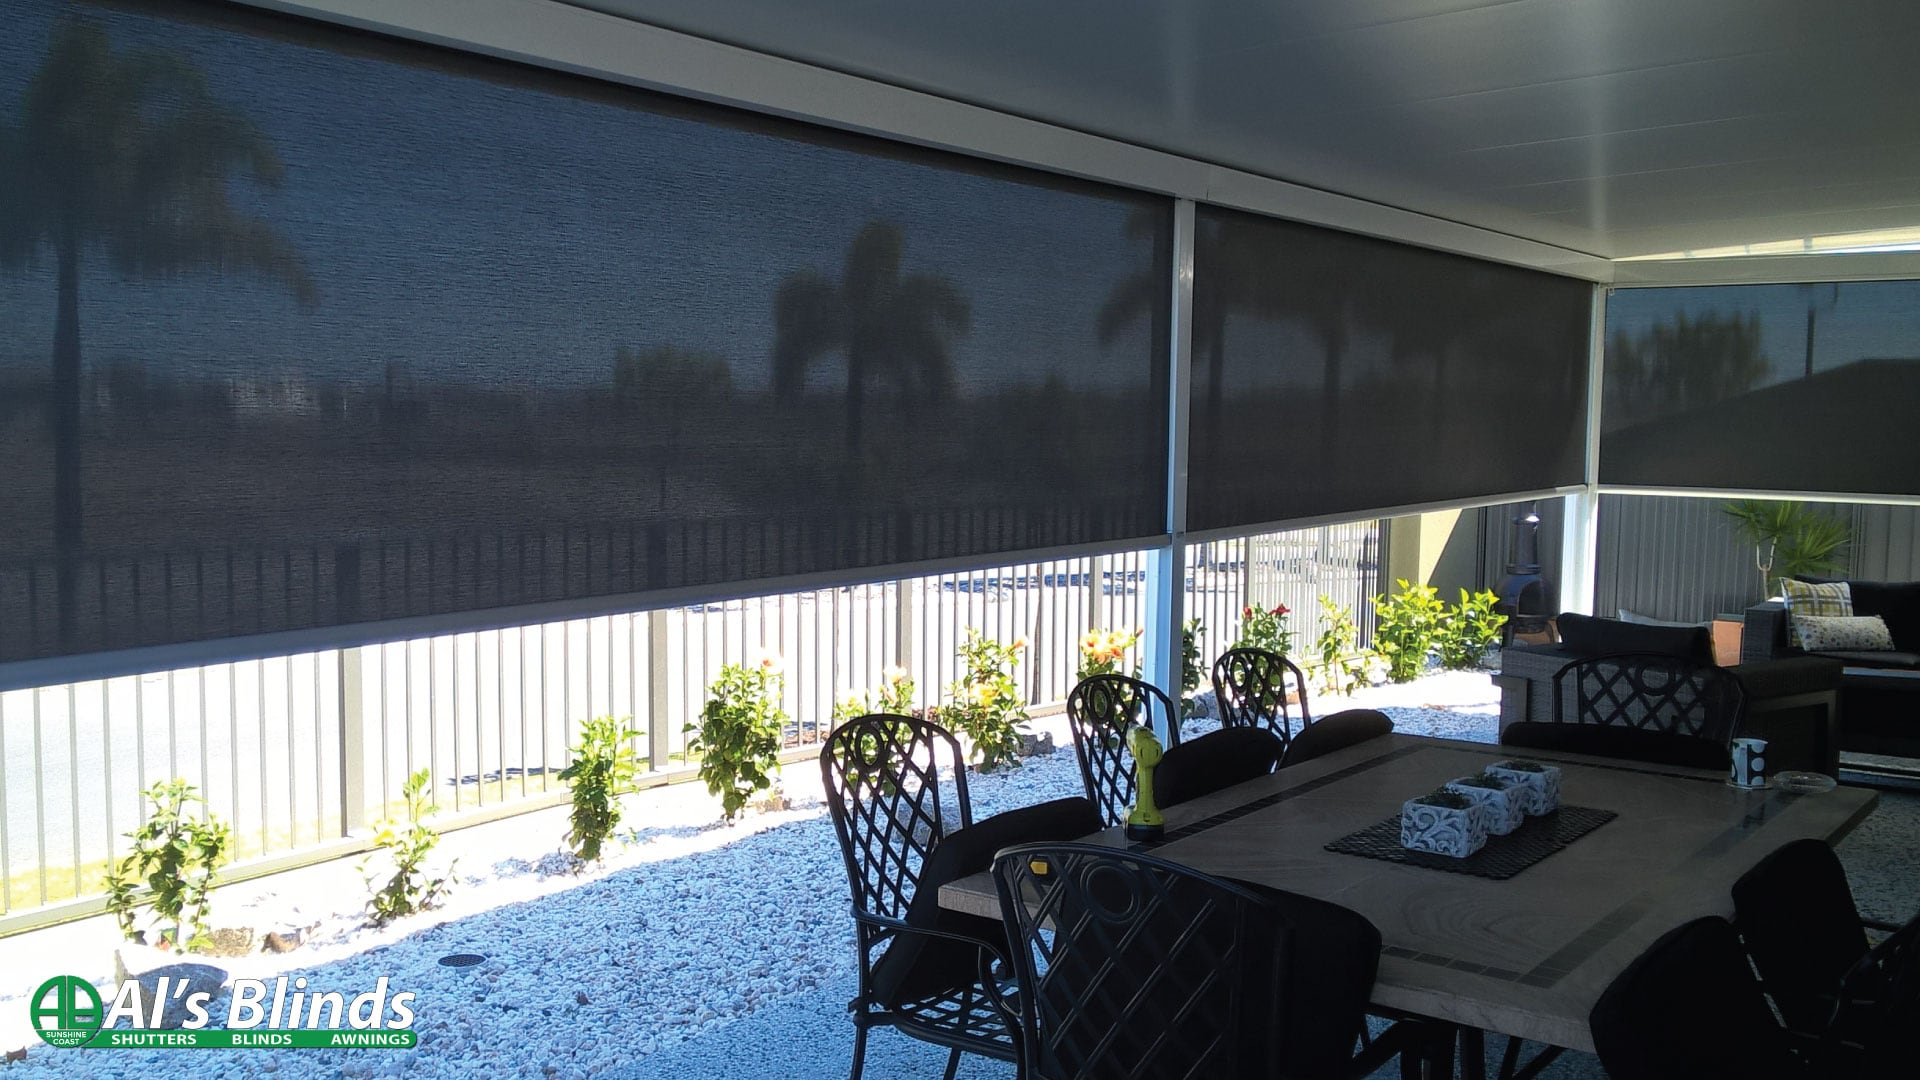 Side Channel Awnings with 95% Blockout Fabric